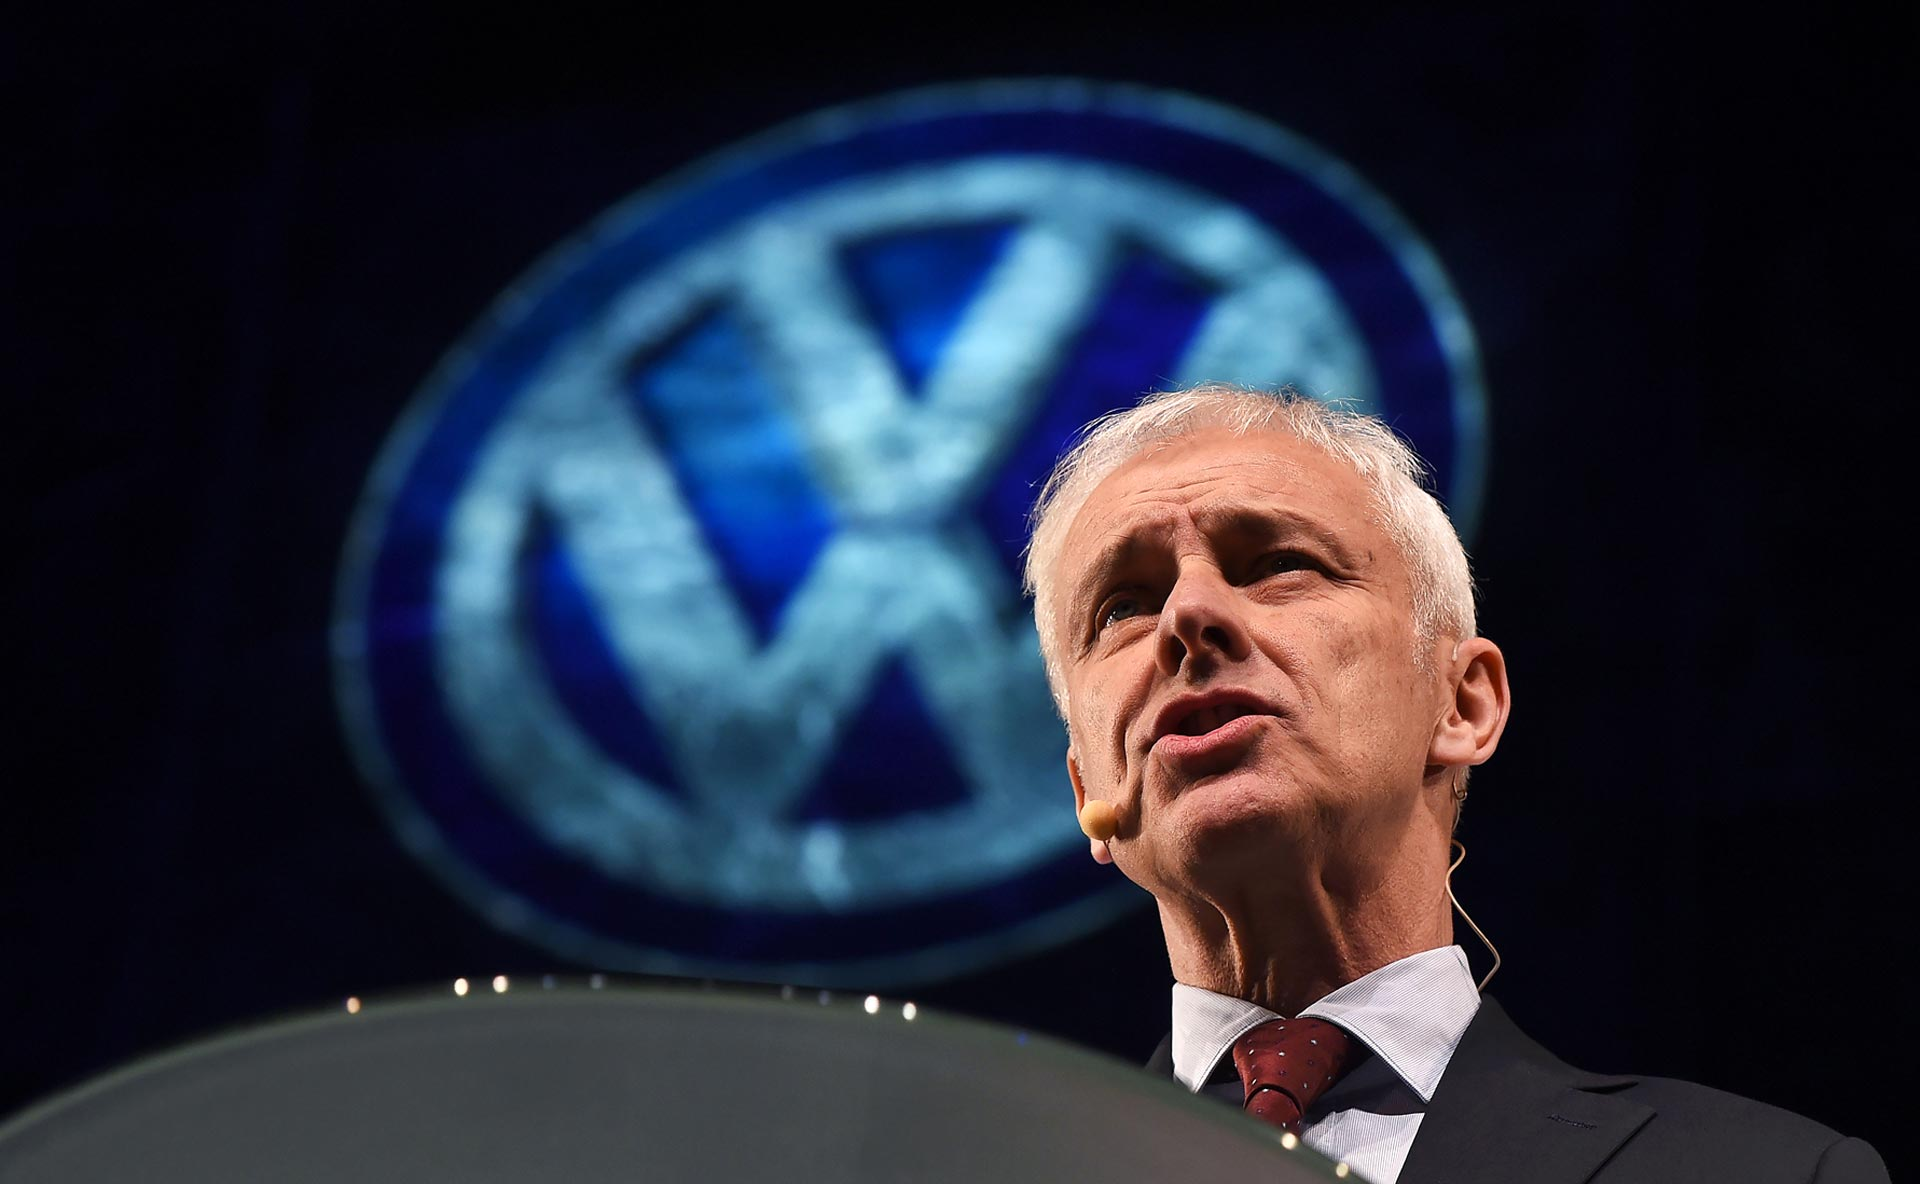 Volkswagen chief executive Matthias Mueller speaks before the official press preview of the 2016 North American International Auto Show in Detroit on January 10, 2016. Mueller apologized for cheating diesel car emissions tests on his first official U.S. visit since the scandal broke in September.